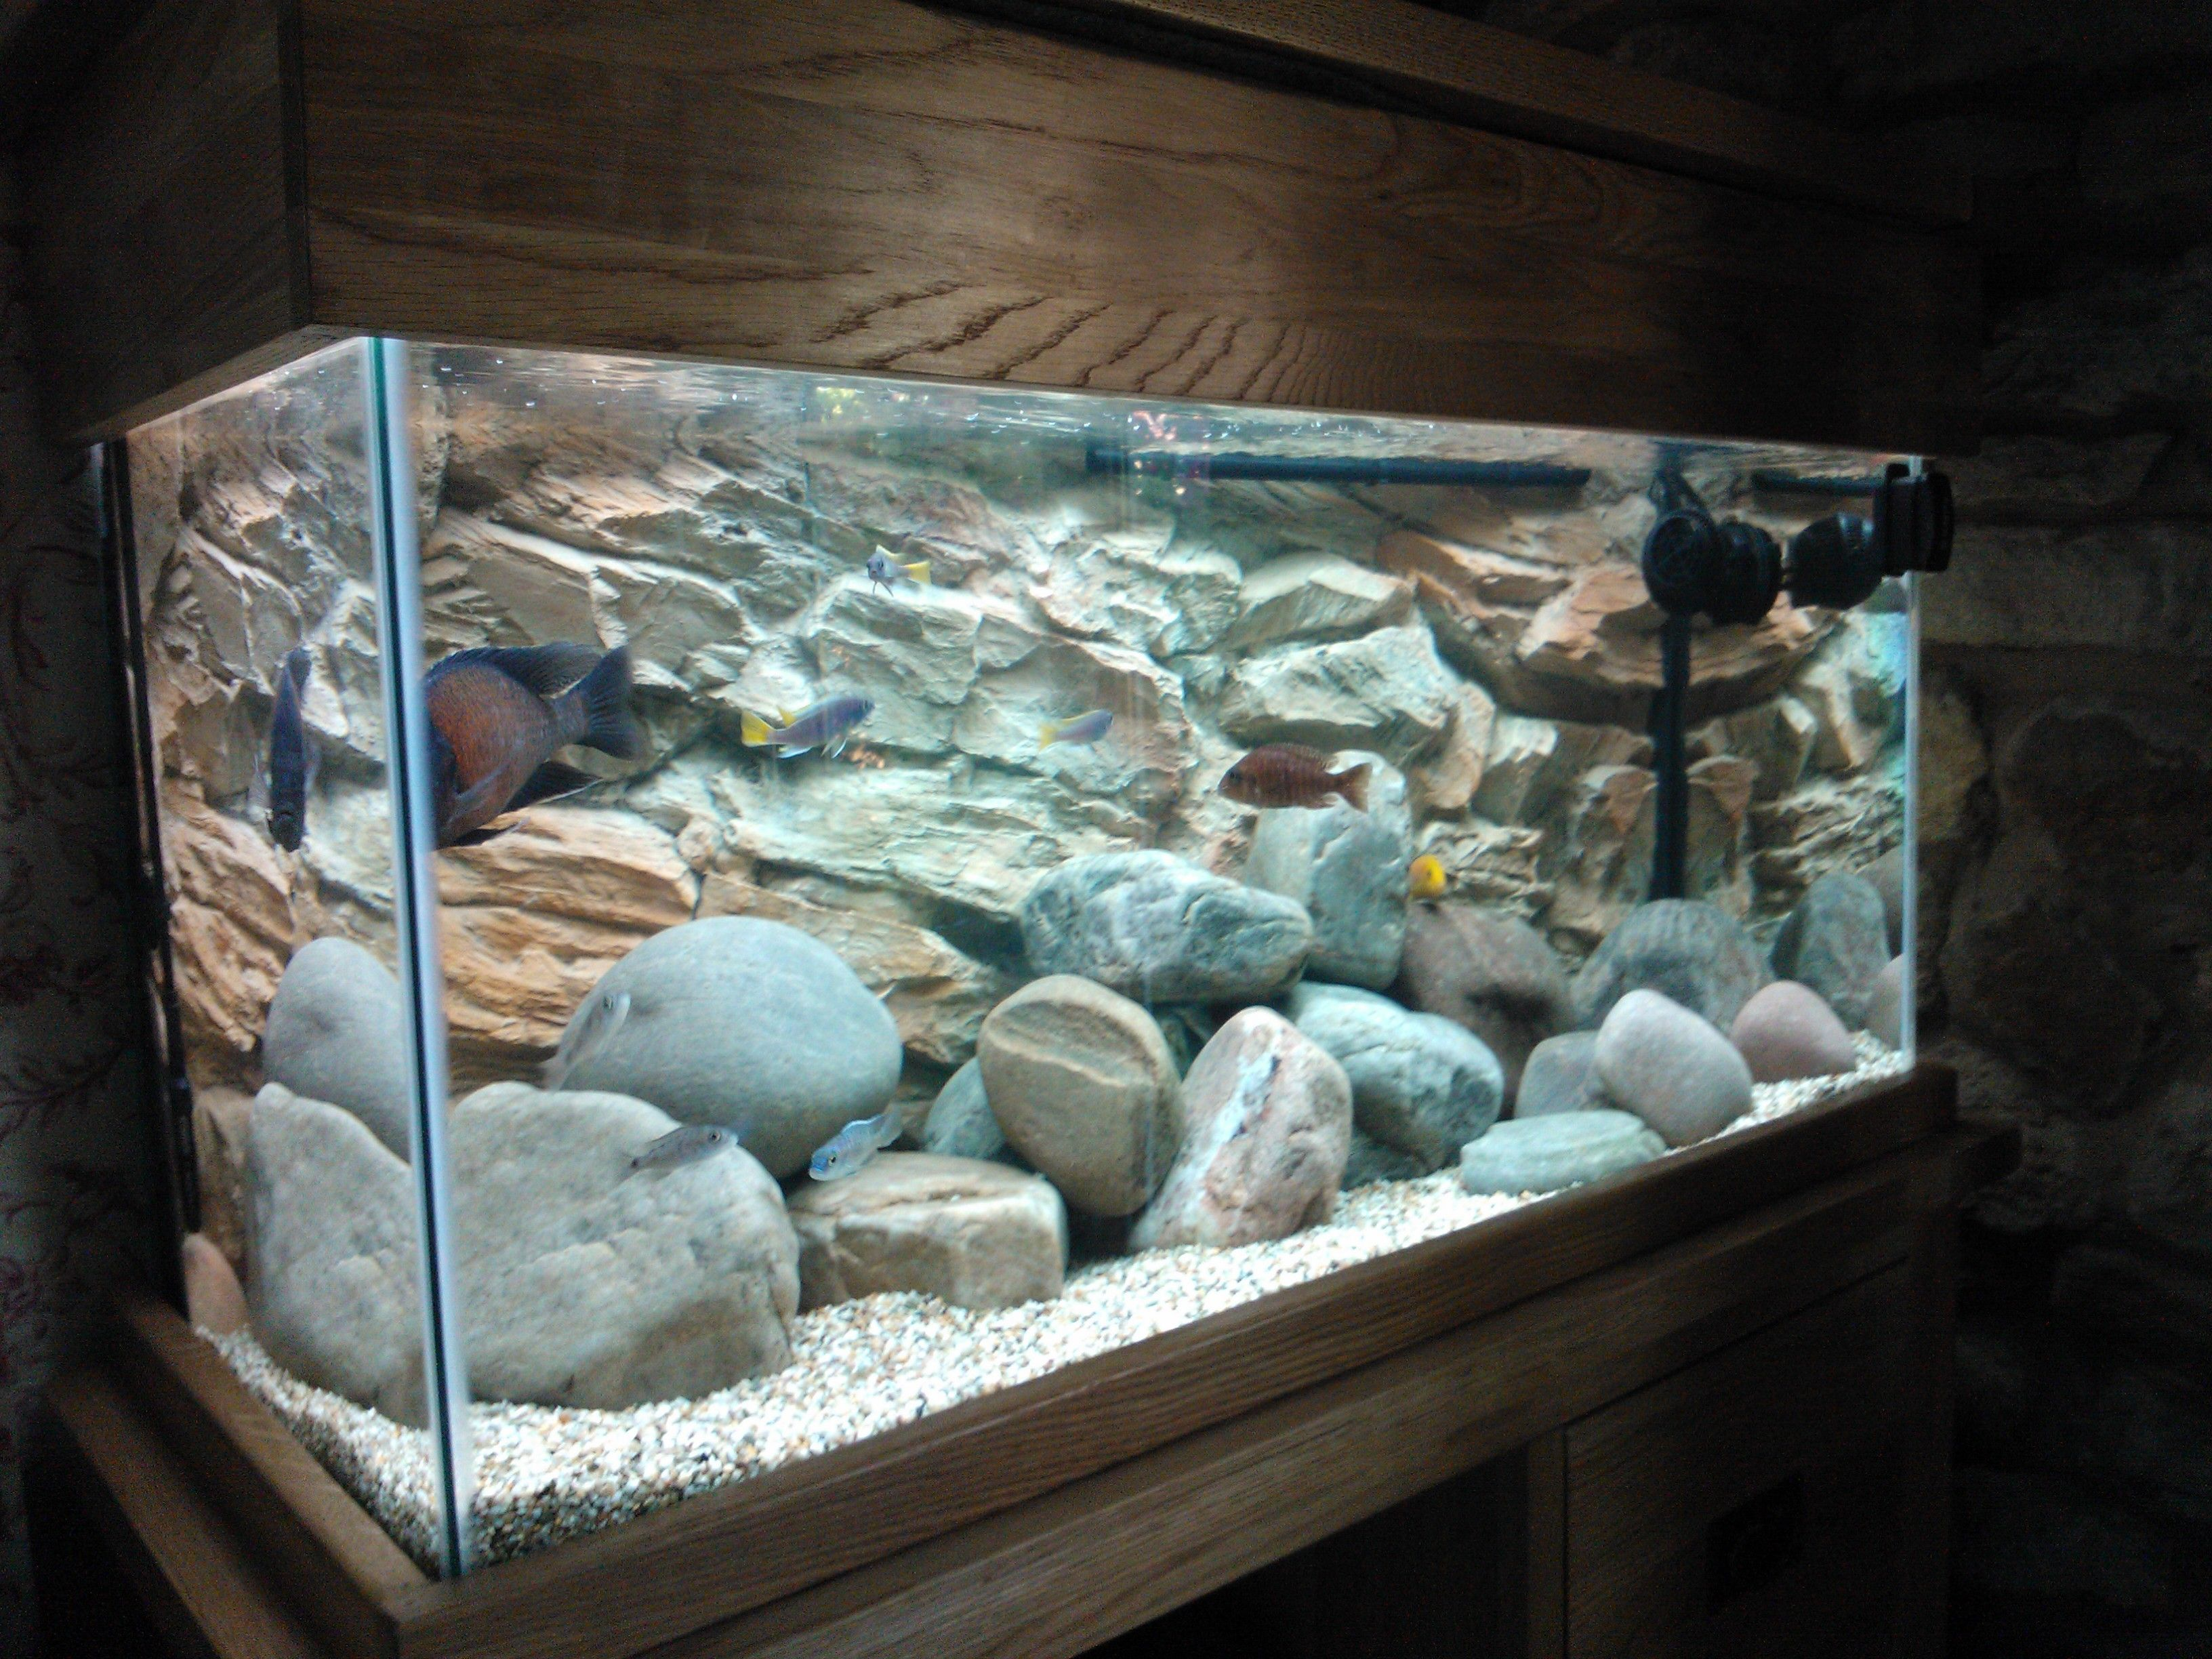 Fish aquarium in downtown toronto - 3d Rock Background